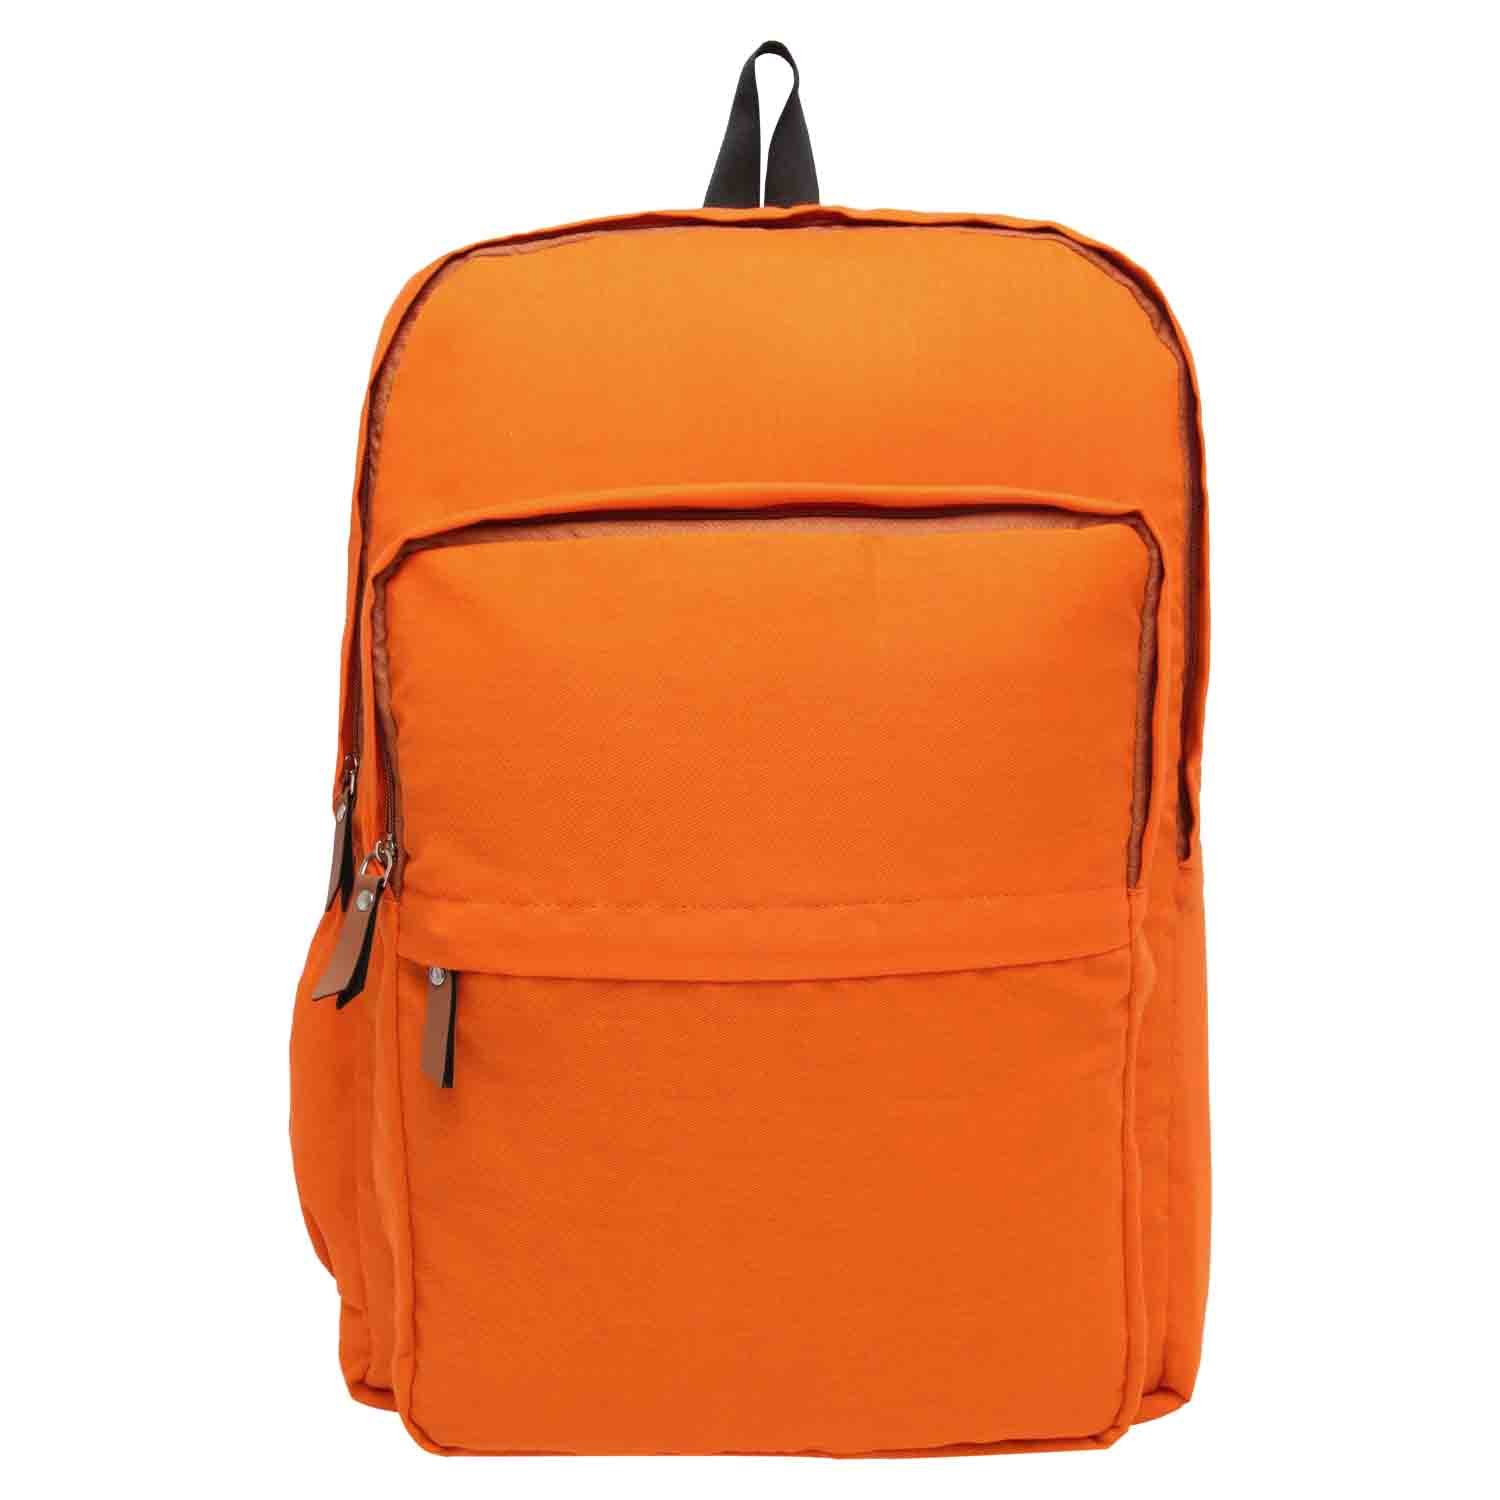 Snoogg Casual Style Lightweight canvas Laptop Bag/Cute backpacks /School Backpack - Orange